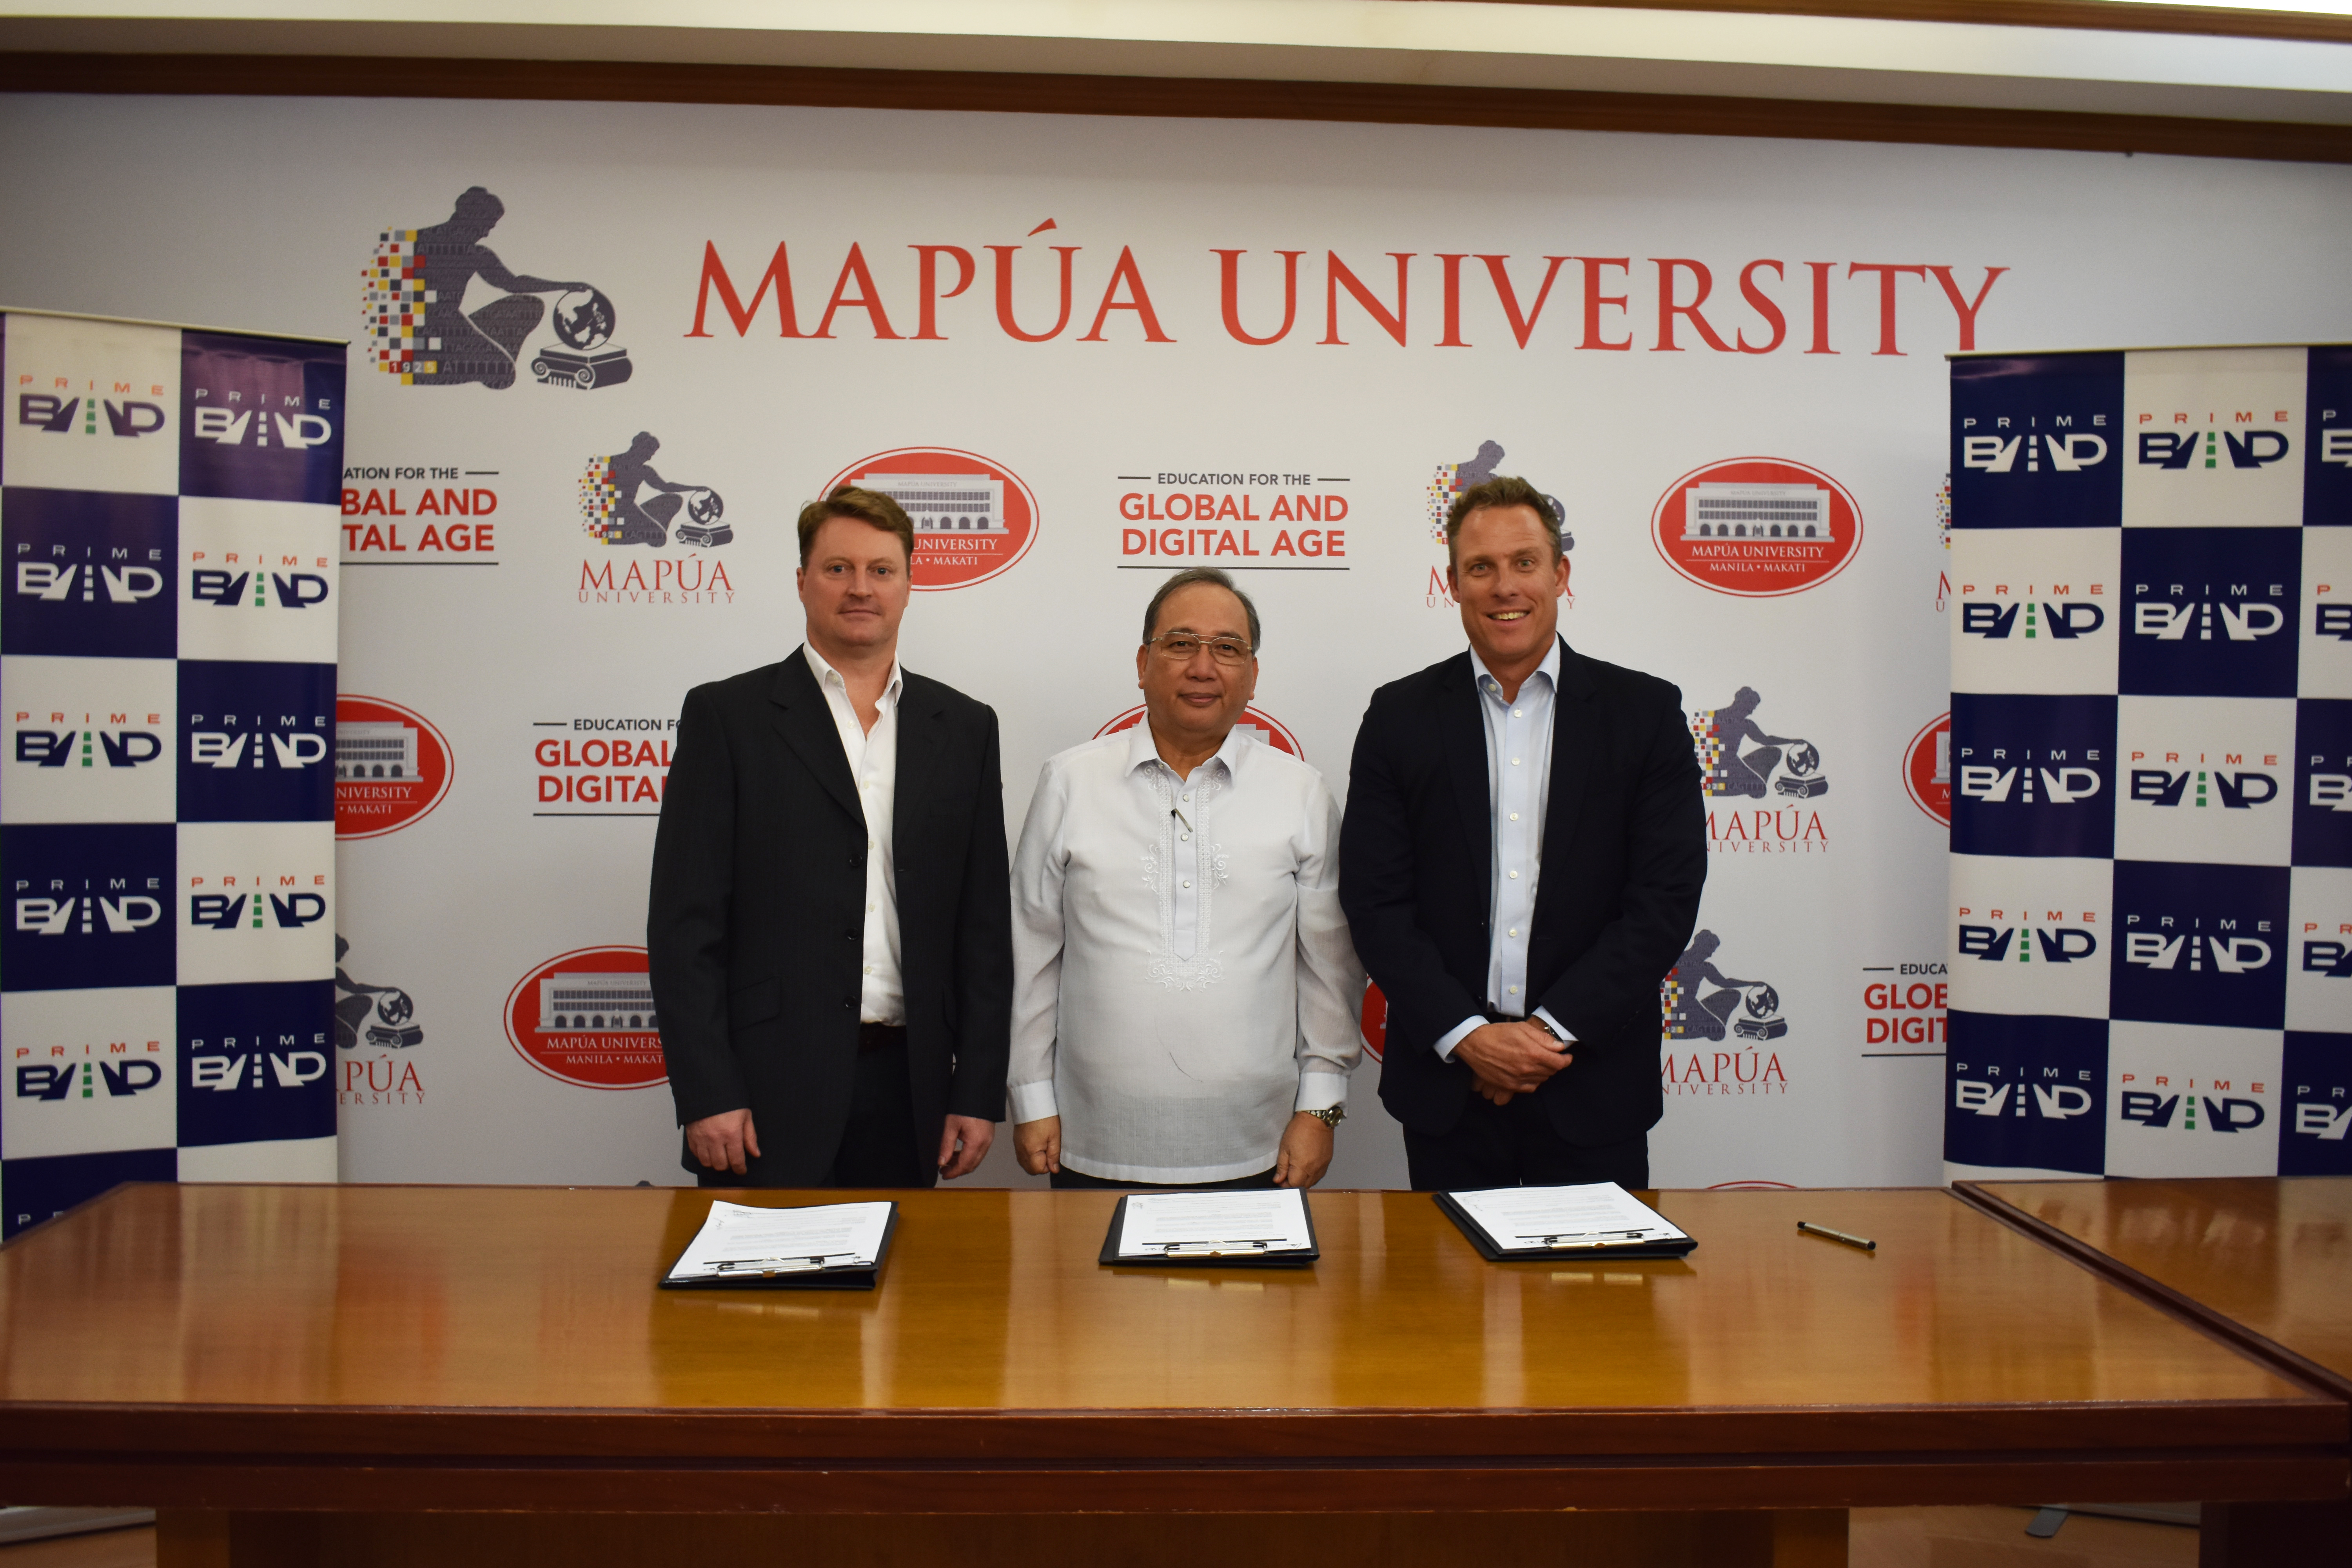 PrimeBMD and Mapua University sign MOA for Dare to Dream scholarship